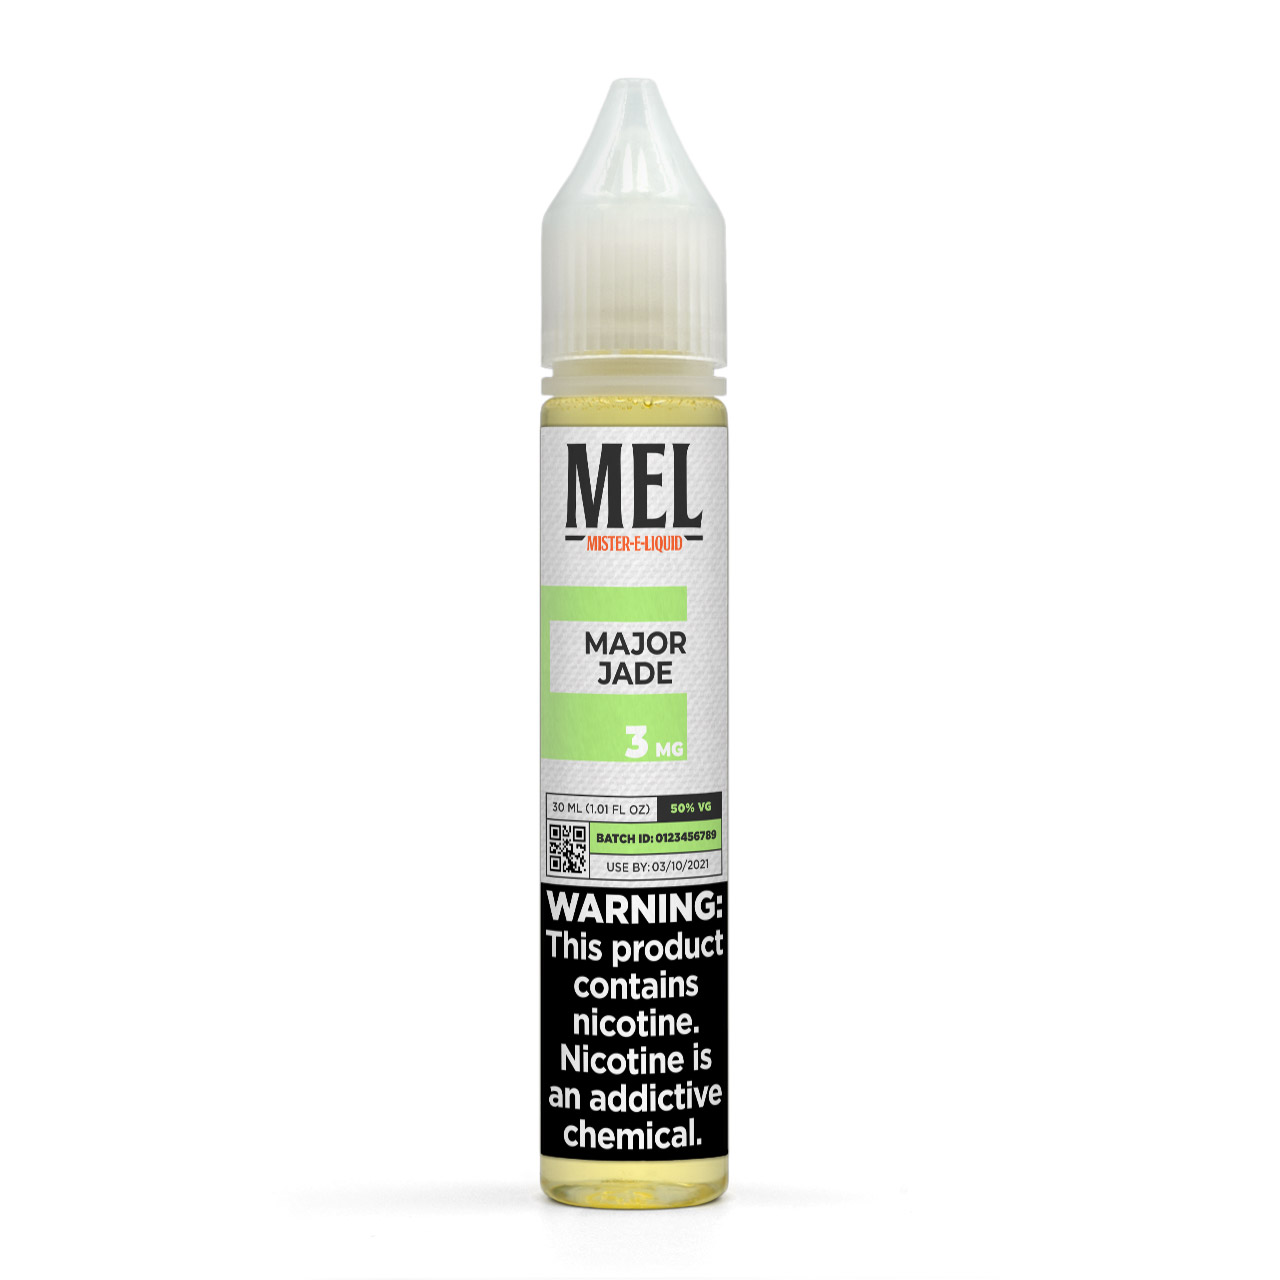 MEL Major Jade Vape Juice, 3 mg